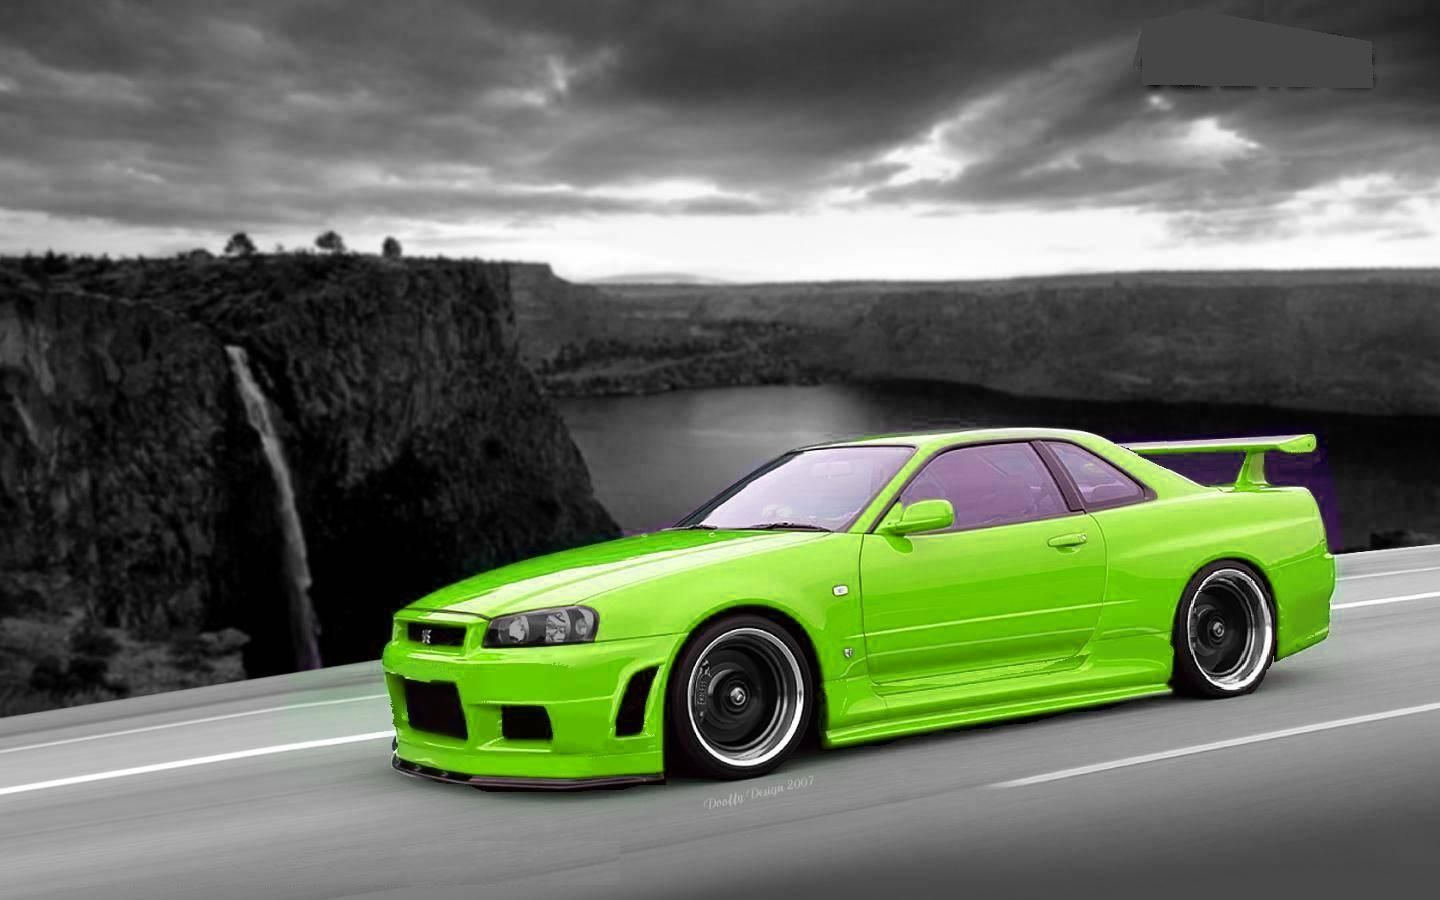 Neon Green Car Wallpapers Top Free Neon Green Car Backgrounds